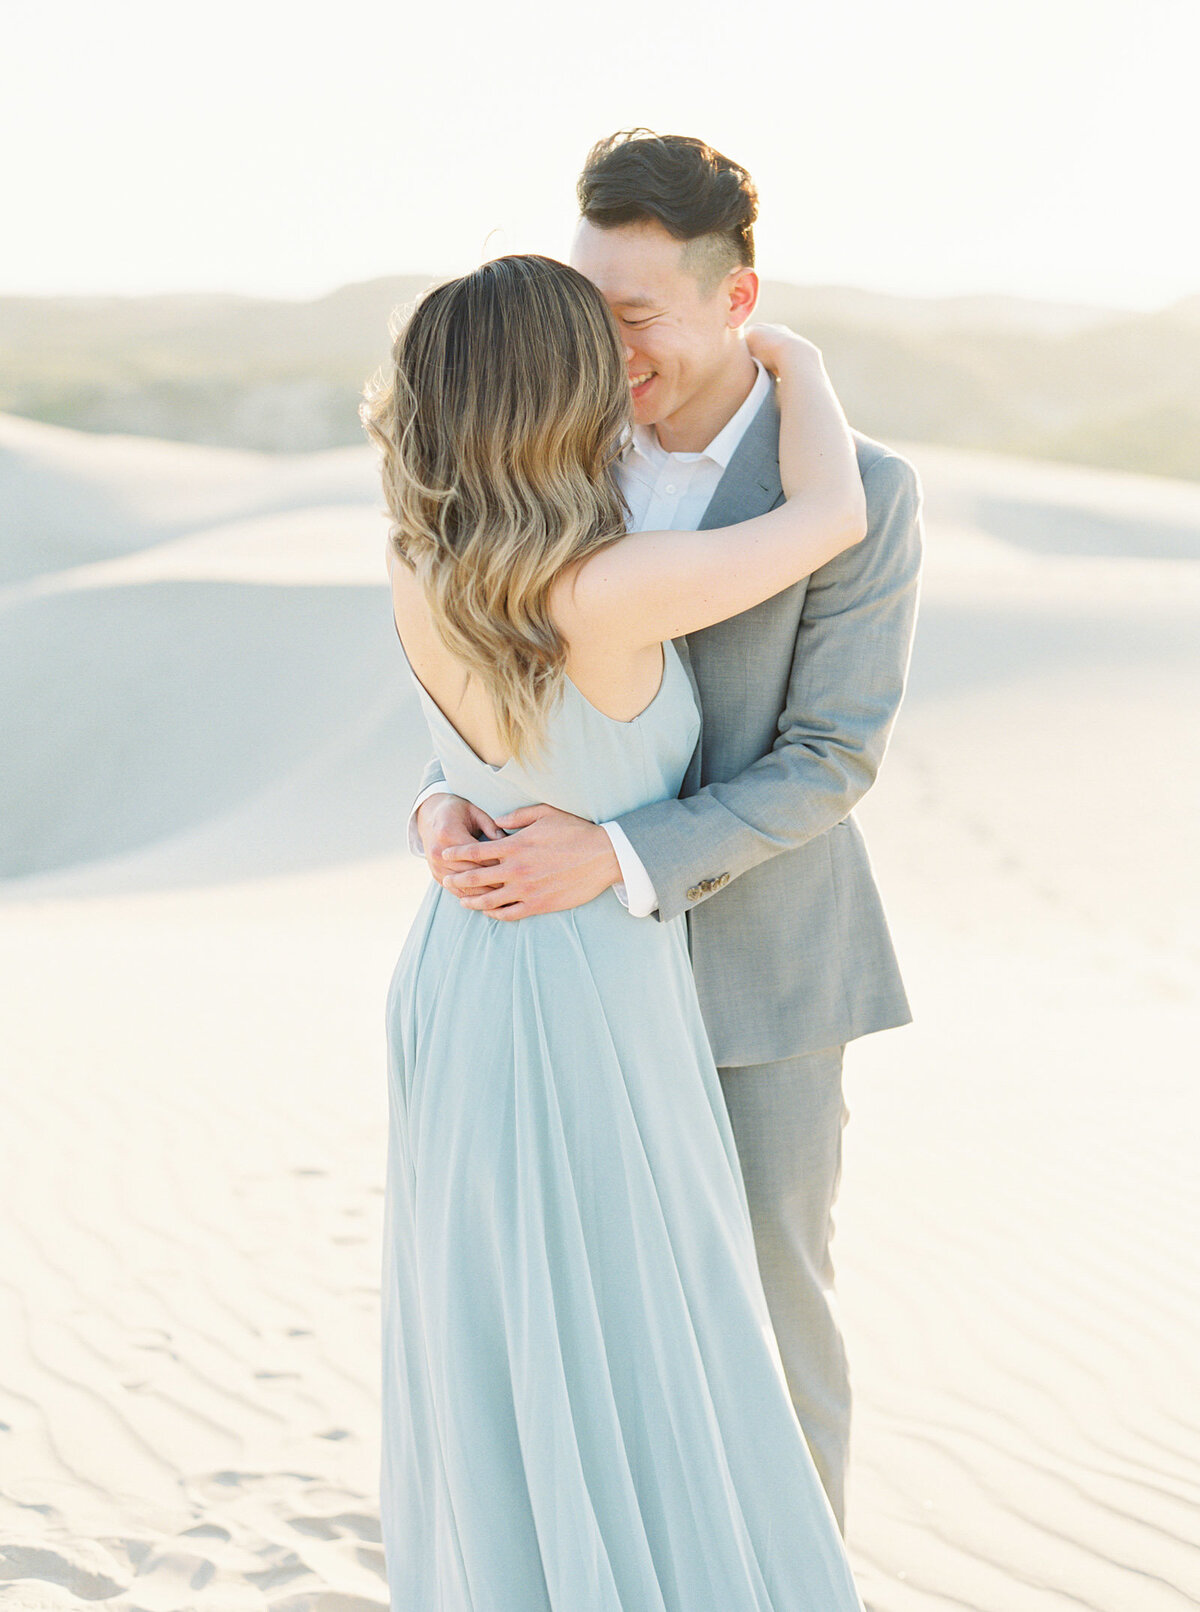 sand-dune-engagement-photos-21